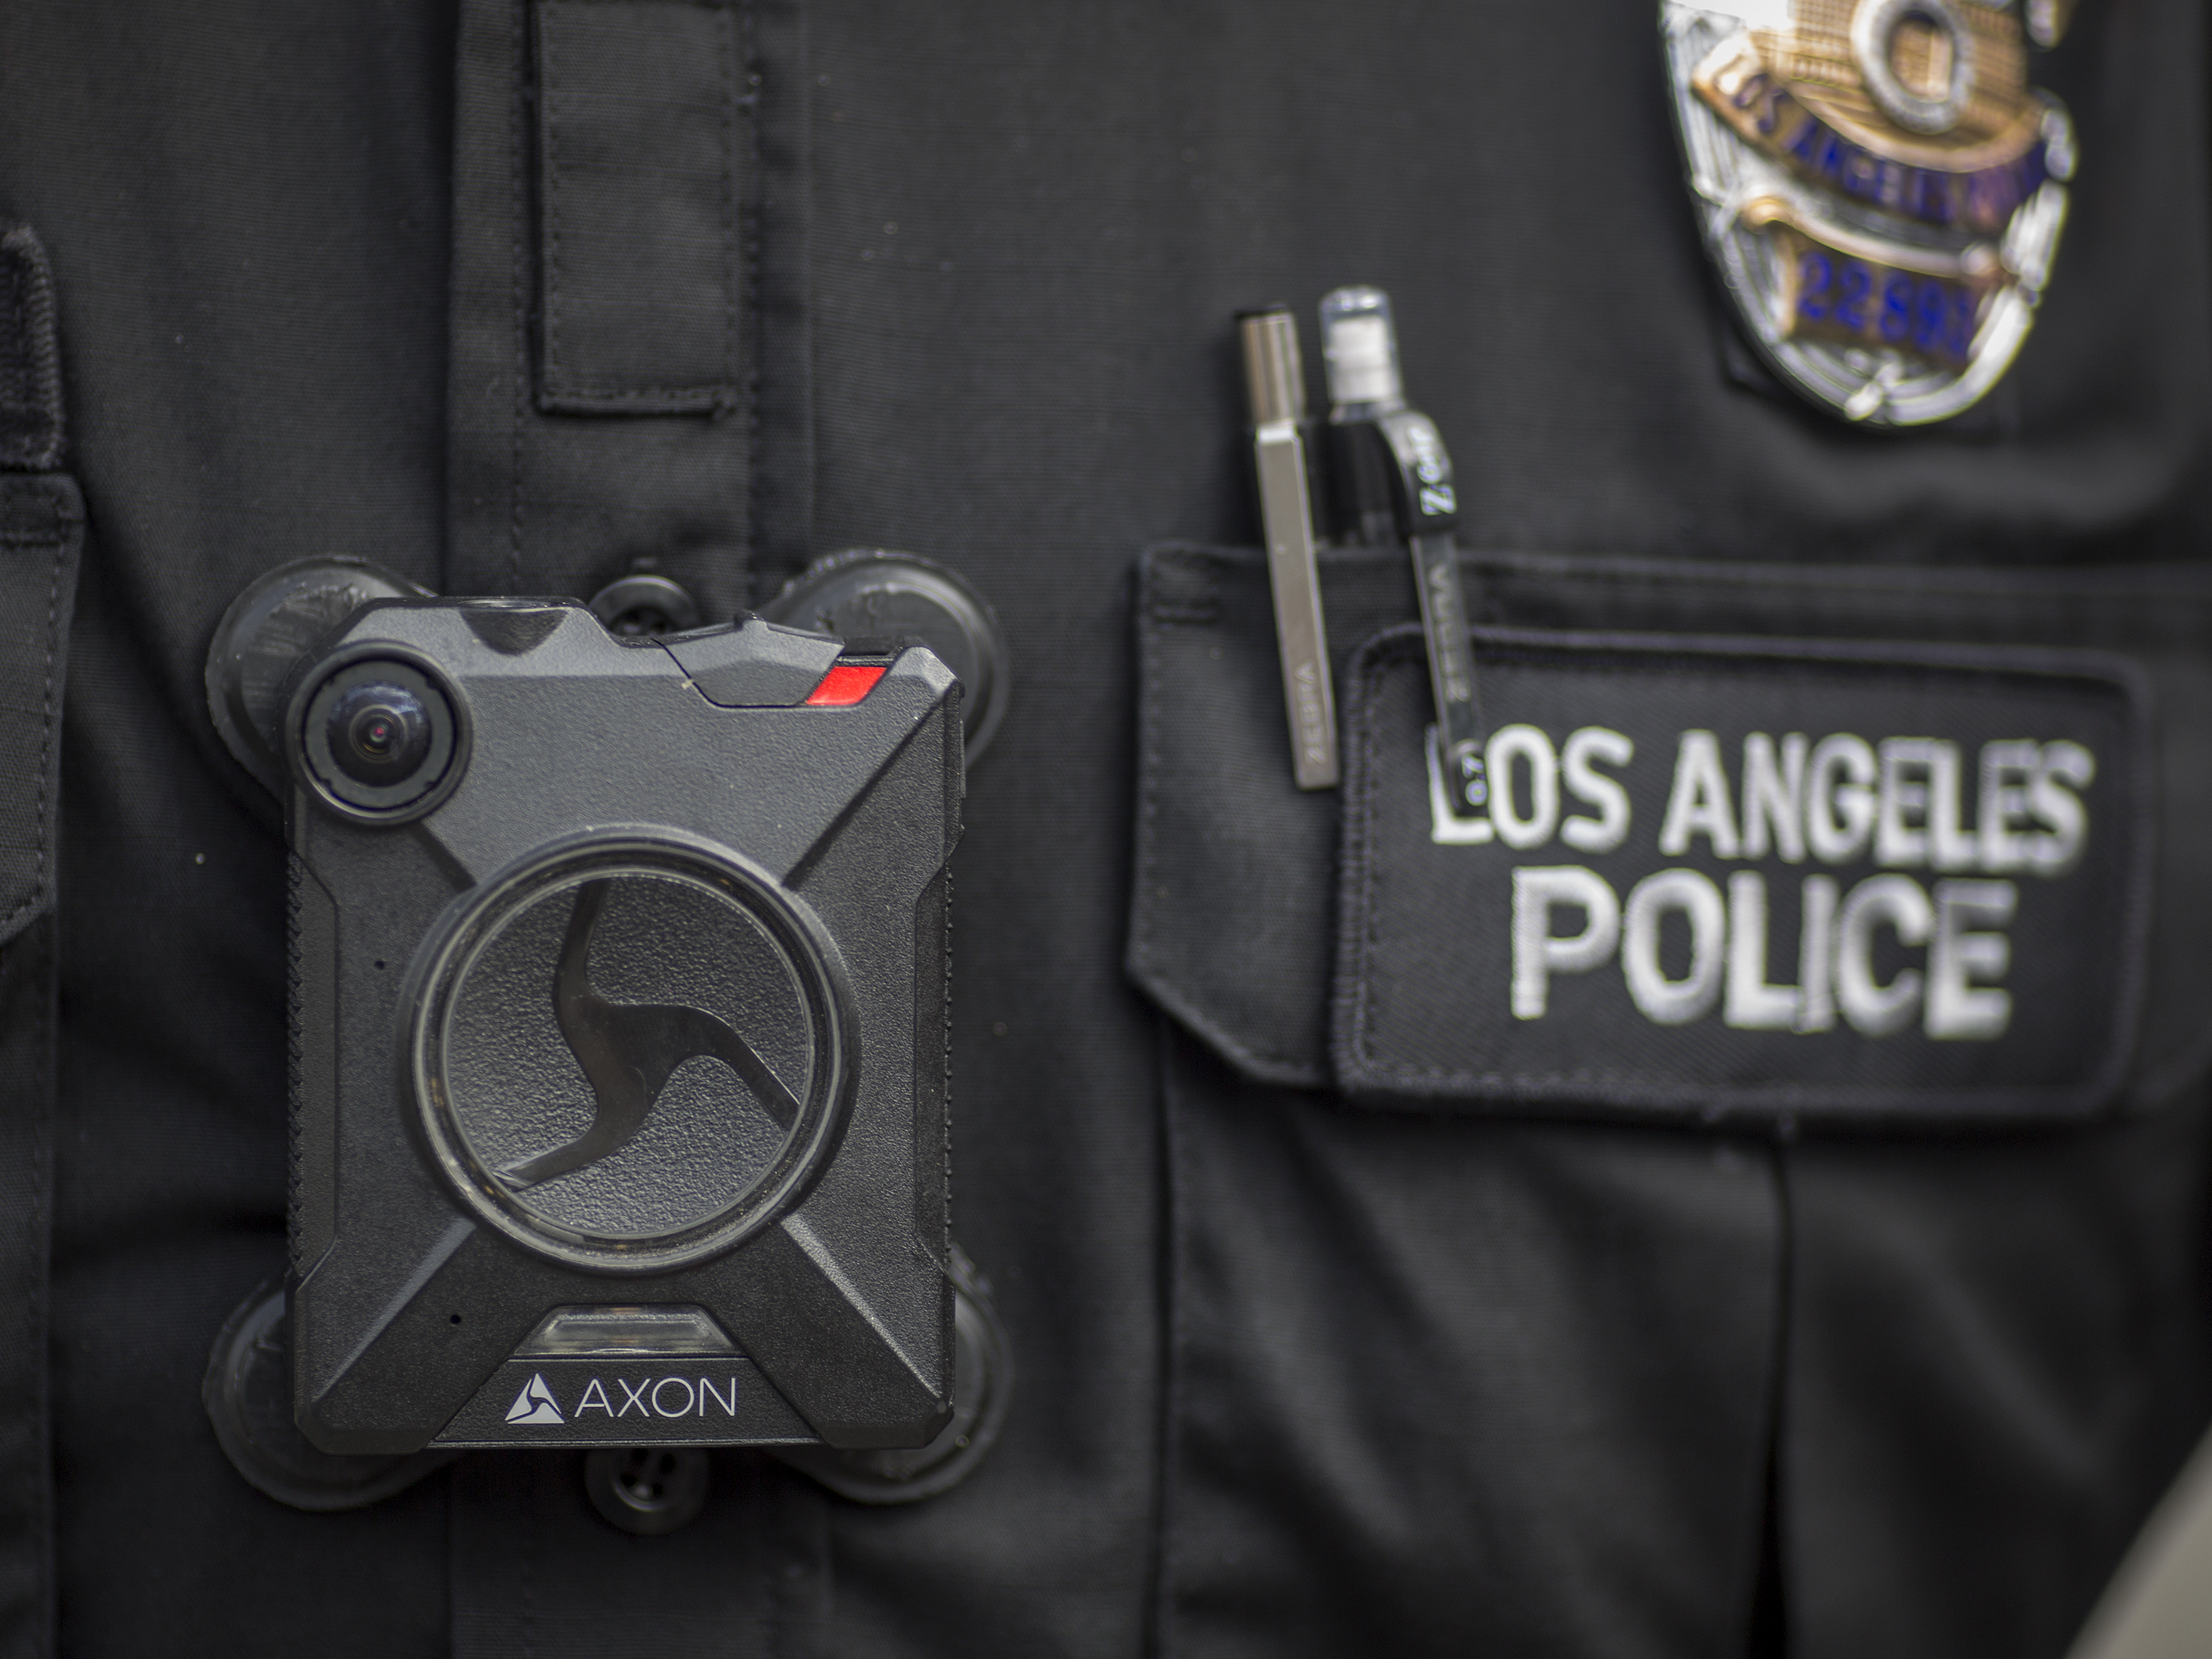 Body Camera Maker Weighs Adding Facial Recognition Technology